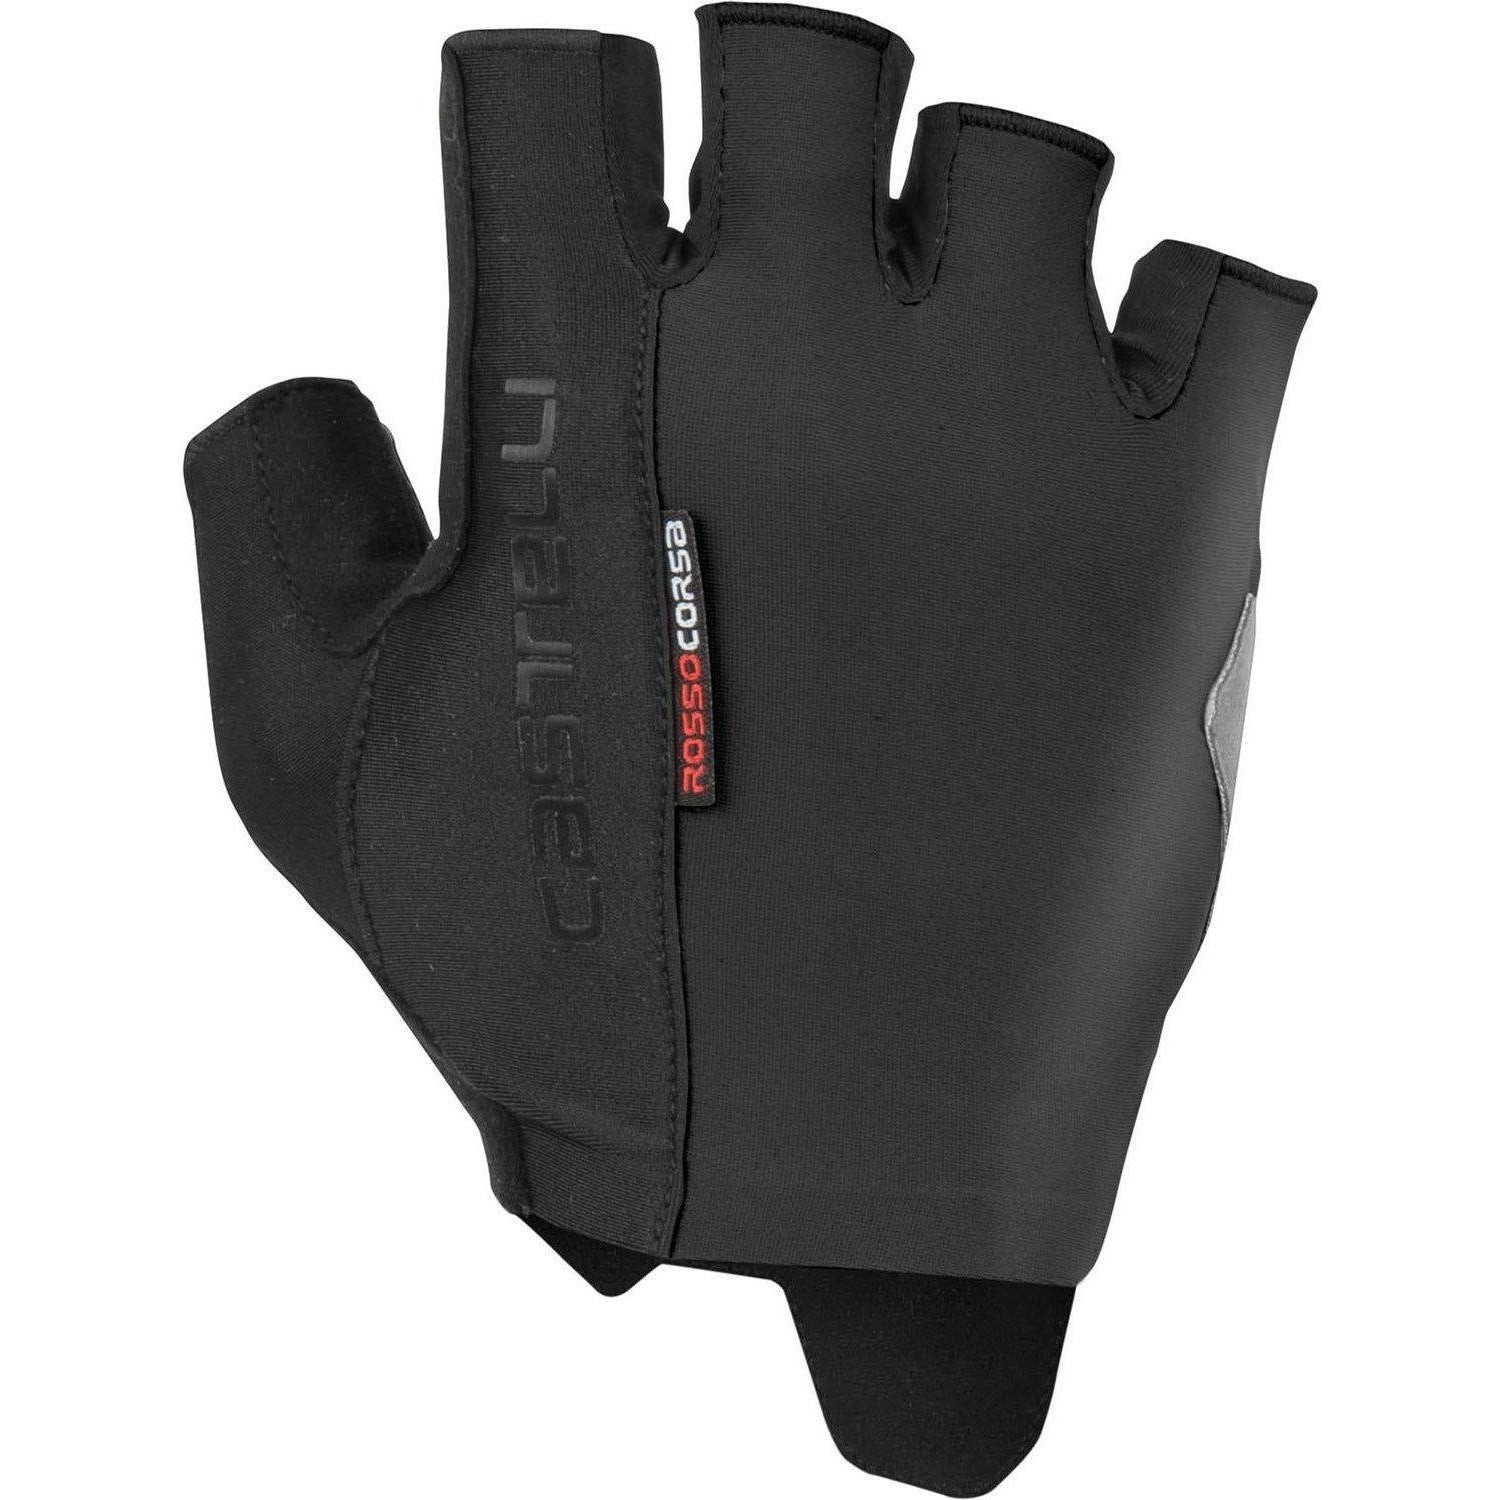 Castelli-Castelli Rosso Corsa Espresso Gloves-Black-XS-CS190260101-saddleback-elite-performance-cycling